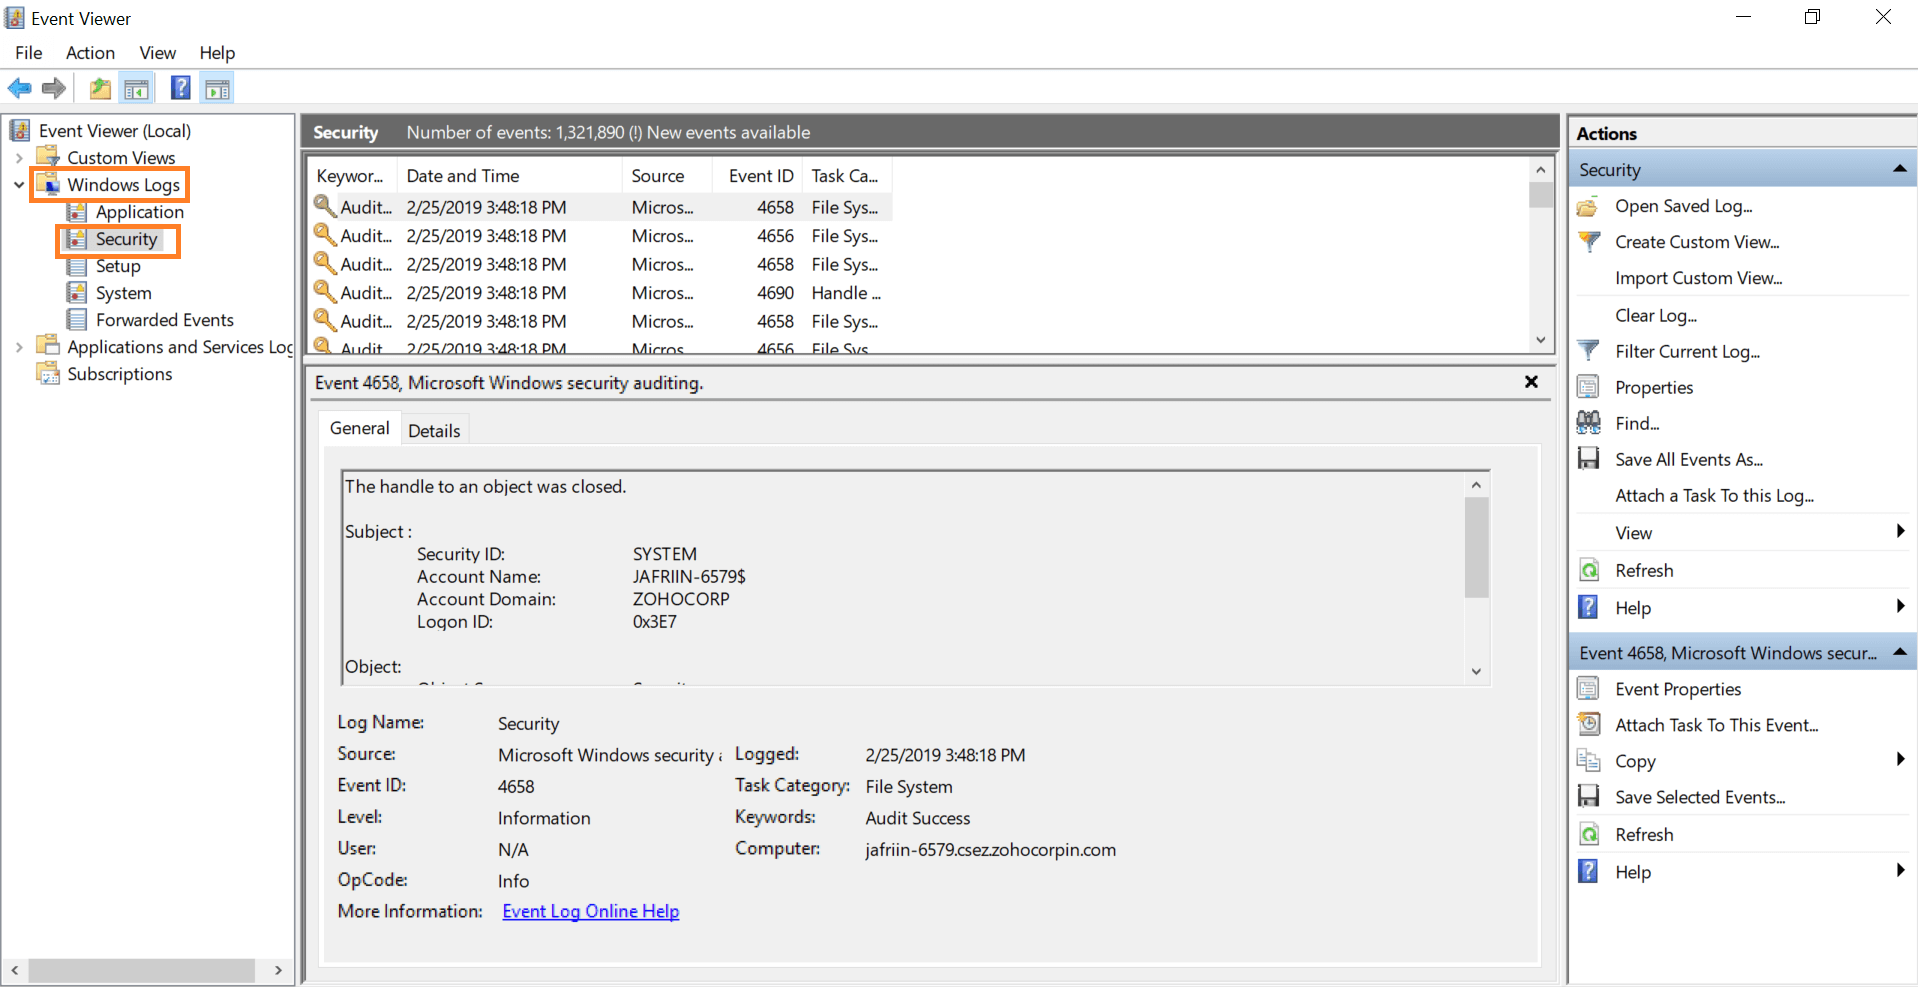 audit-failed-access-attempts-to-shared-folder-security-windows-log